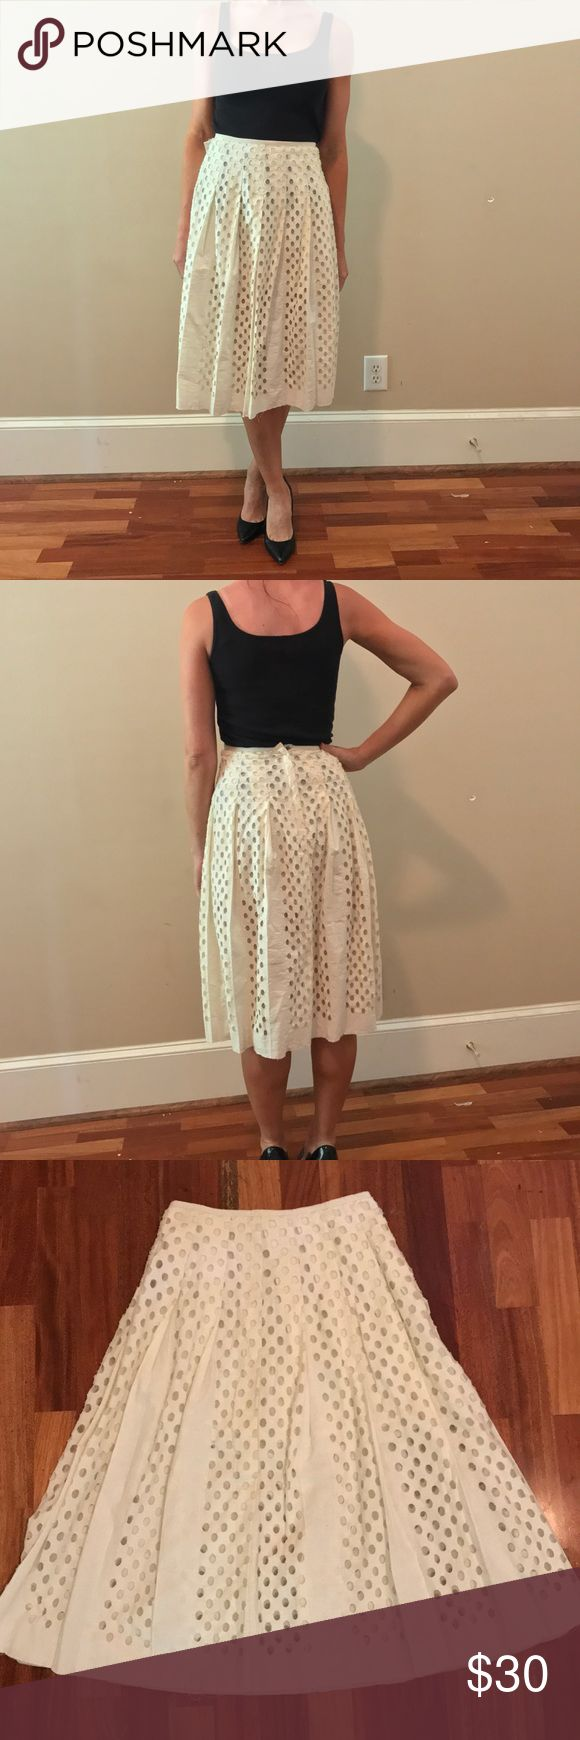 FP One Free People Skirt Size 0 NWOT!!!! This is a super cute FP One by Free People Size 0 Skirt. It comes with a built in slit that goes to the mid thigh and the remaining dots are see through. So nice!!!! Please feel free to make offers or bundle deals! Happy to negotiate!! Free People Skirts Midi